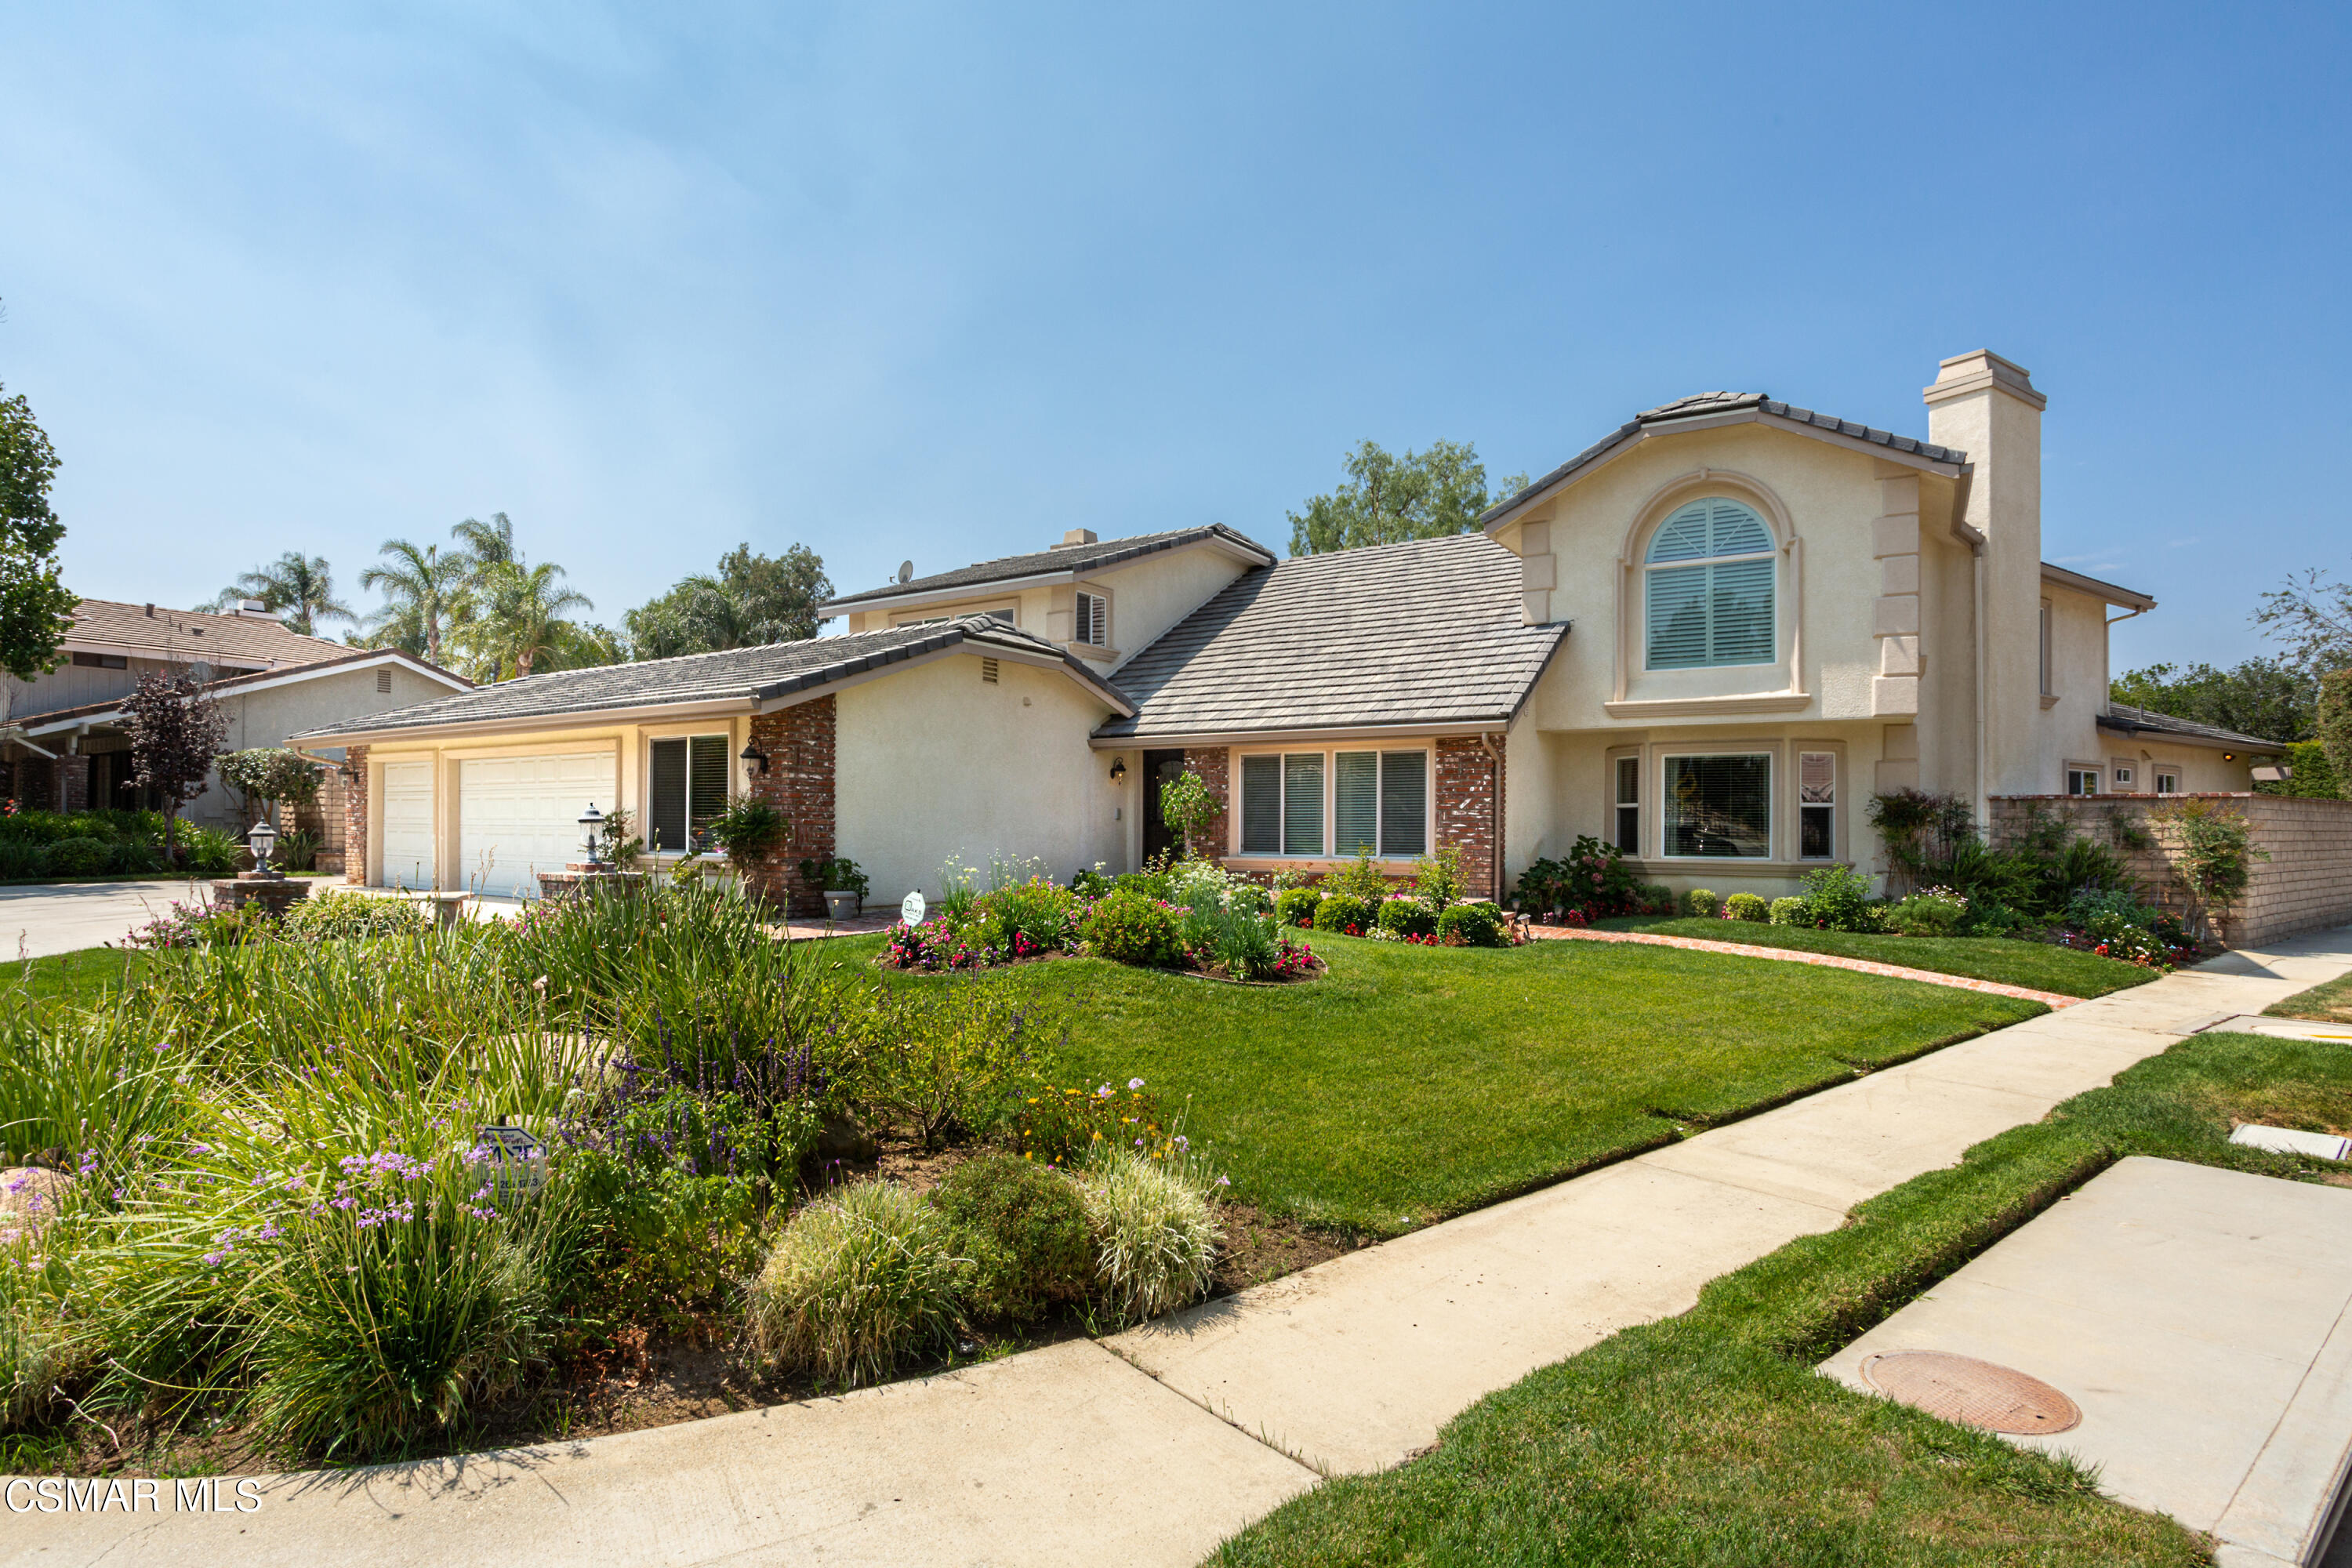 Photo of 587 Valley Gate Road, Simi Valley, CA 93065